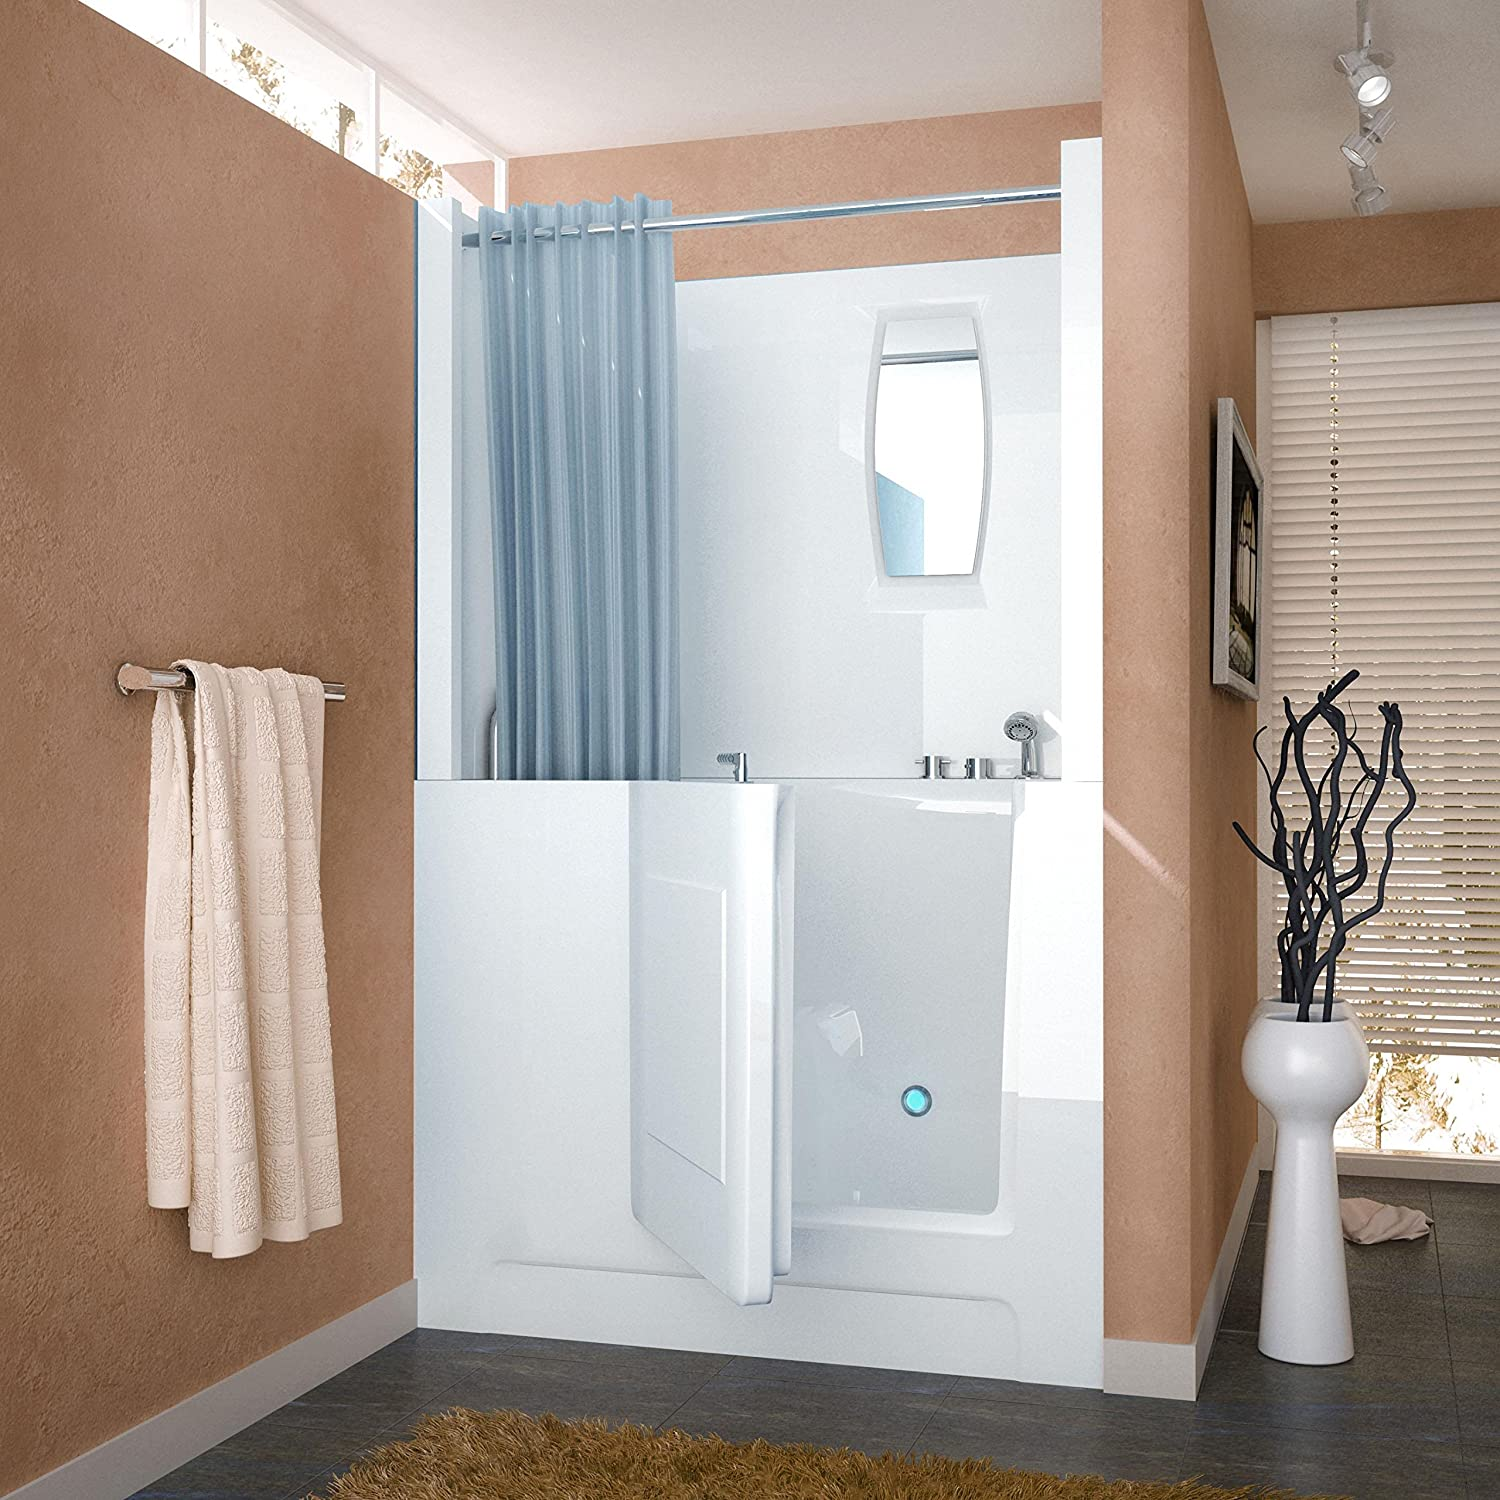 3. Spa World Venzi Rectangular Soaking Walk-In Bathtub